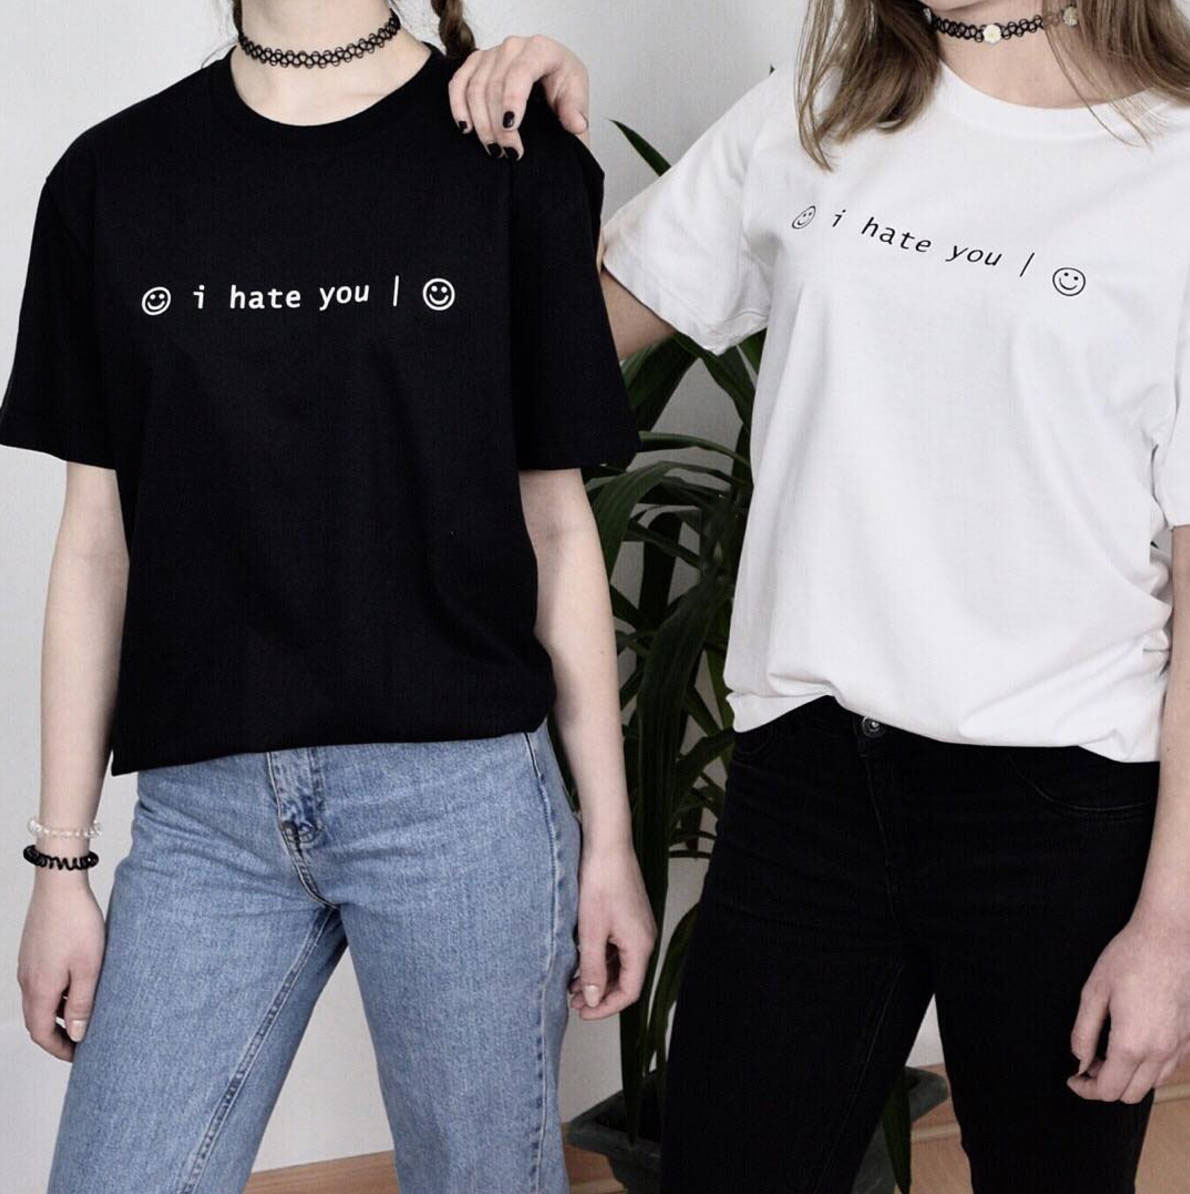 Black t shirt grunge - I Hate You Smiley Face T Shirt Tumblr Inspired Pastel Pale Grunge Aesthetic Tee 2017 New